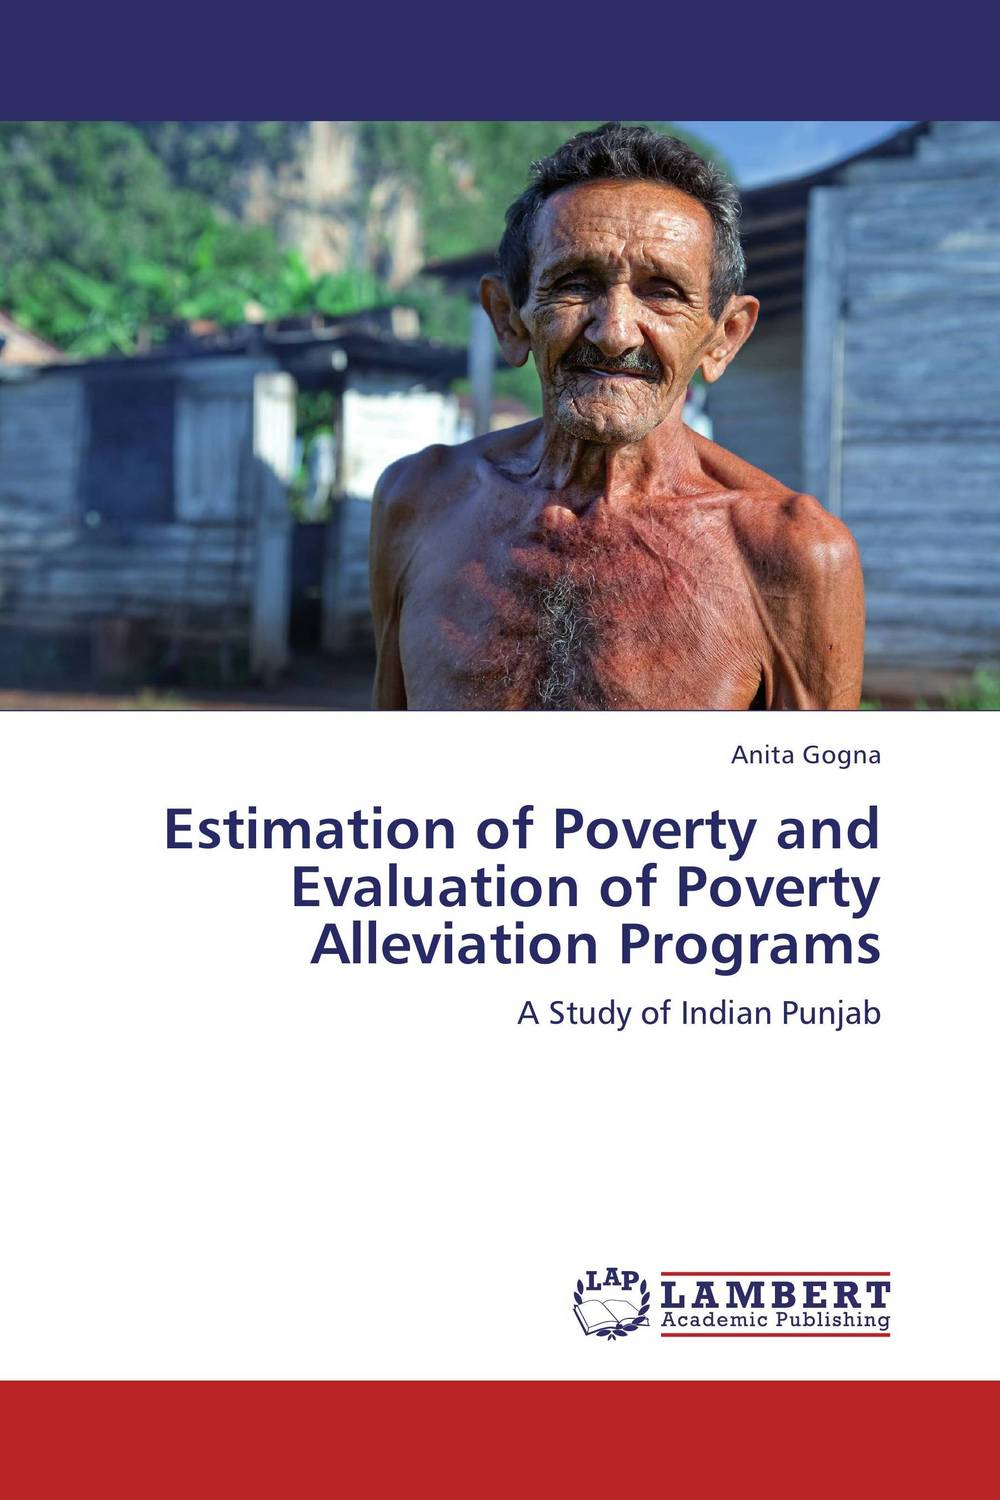 Estimation of Poverty and Evaluation of Poverty Alleviation Programs role of ict in rural poverty alleviation